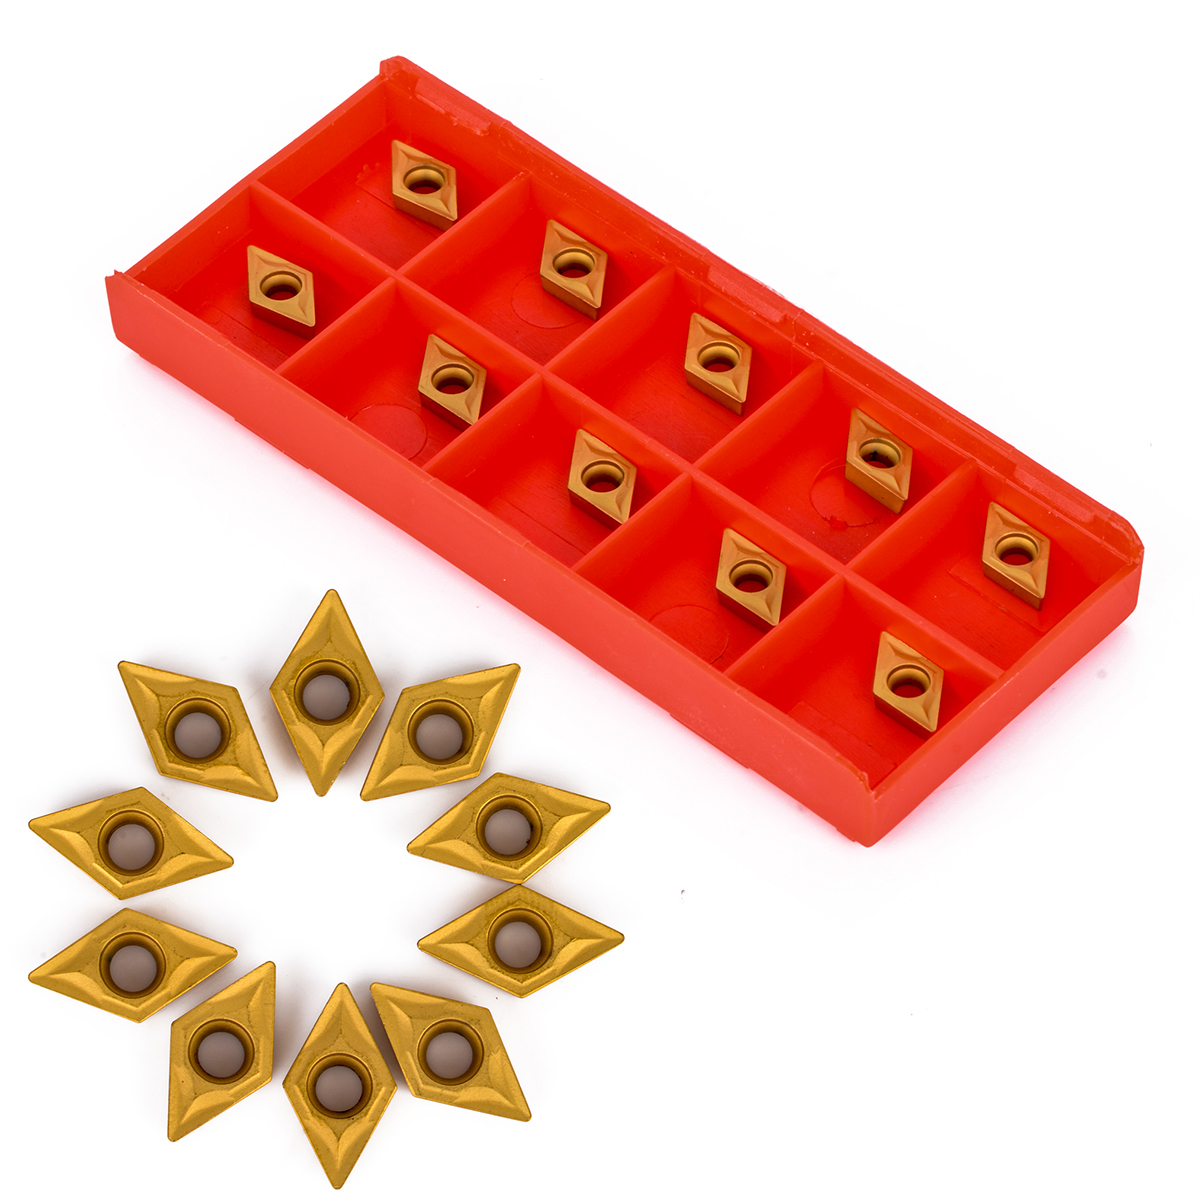 10Pcs DCMT070204 YBC251 Carbide Inserts 7 X 7 X 2mm For Lathe Turning Tool Boring Bar Cutter Blades